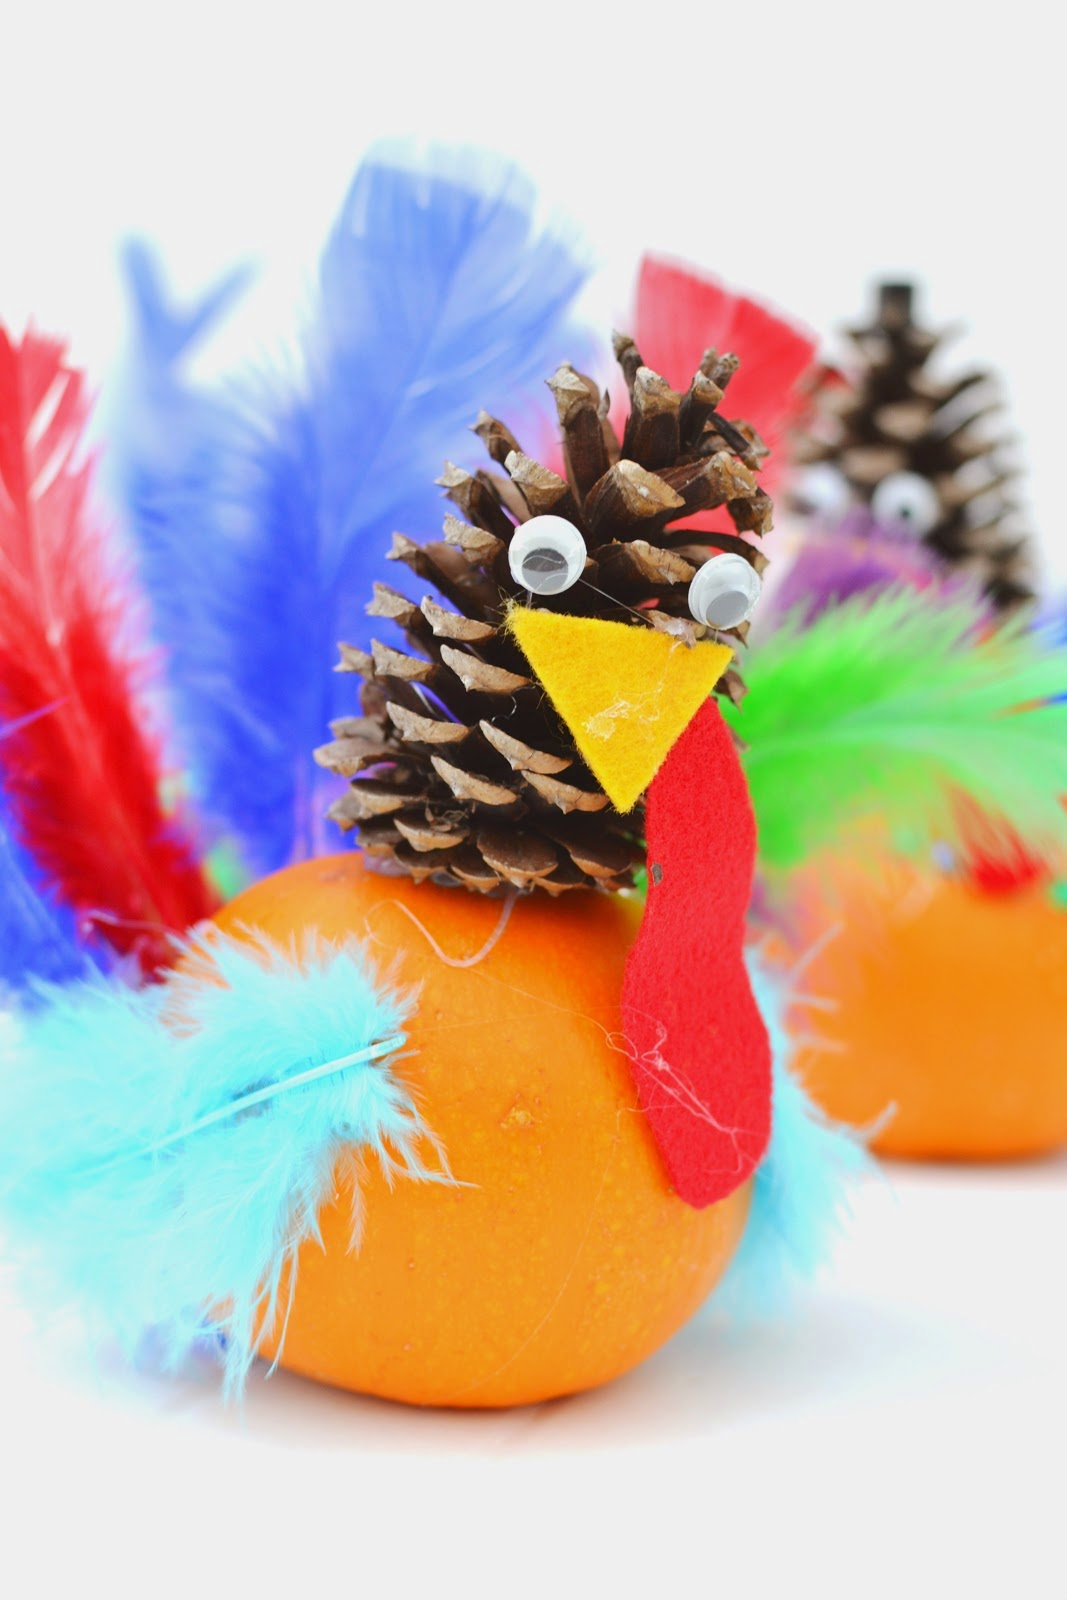 http://plentyofpaprika.blogspot.com/2014/11/pumpkin-pine-cone-turkey-craft.html